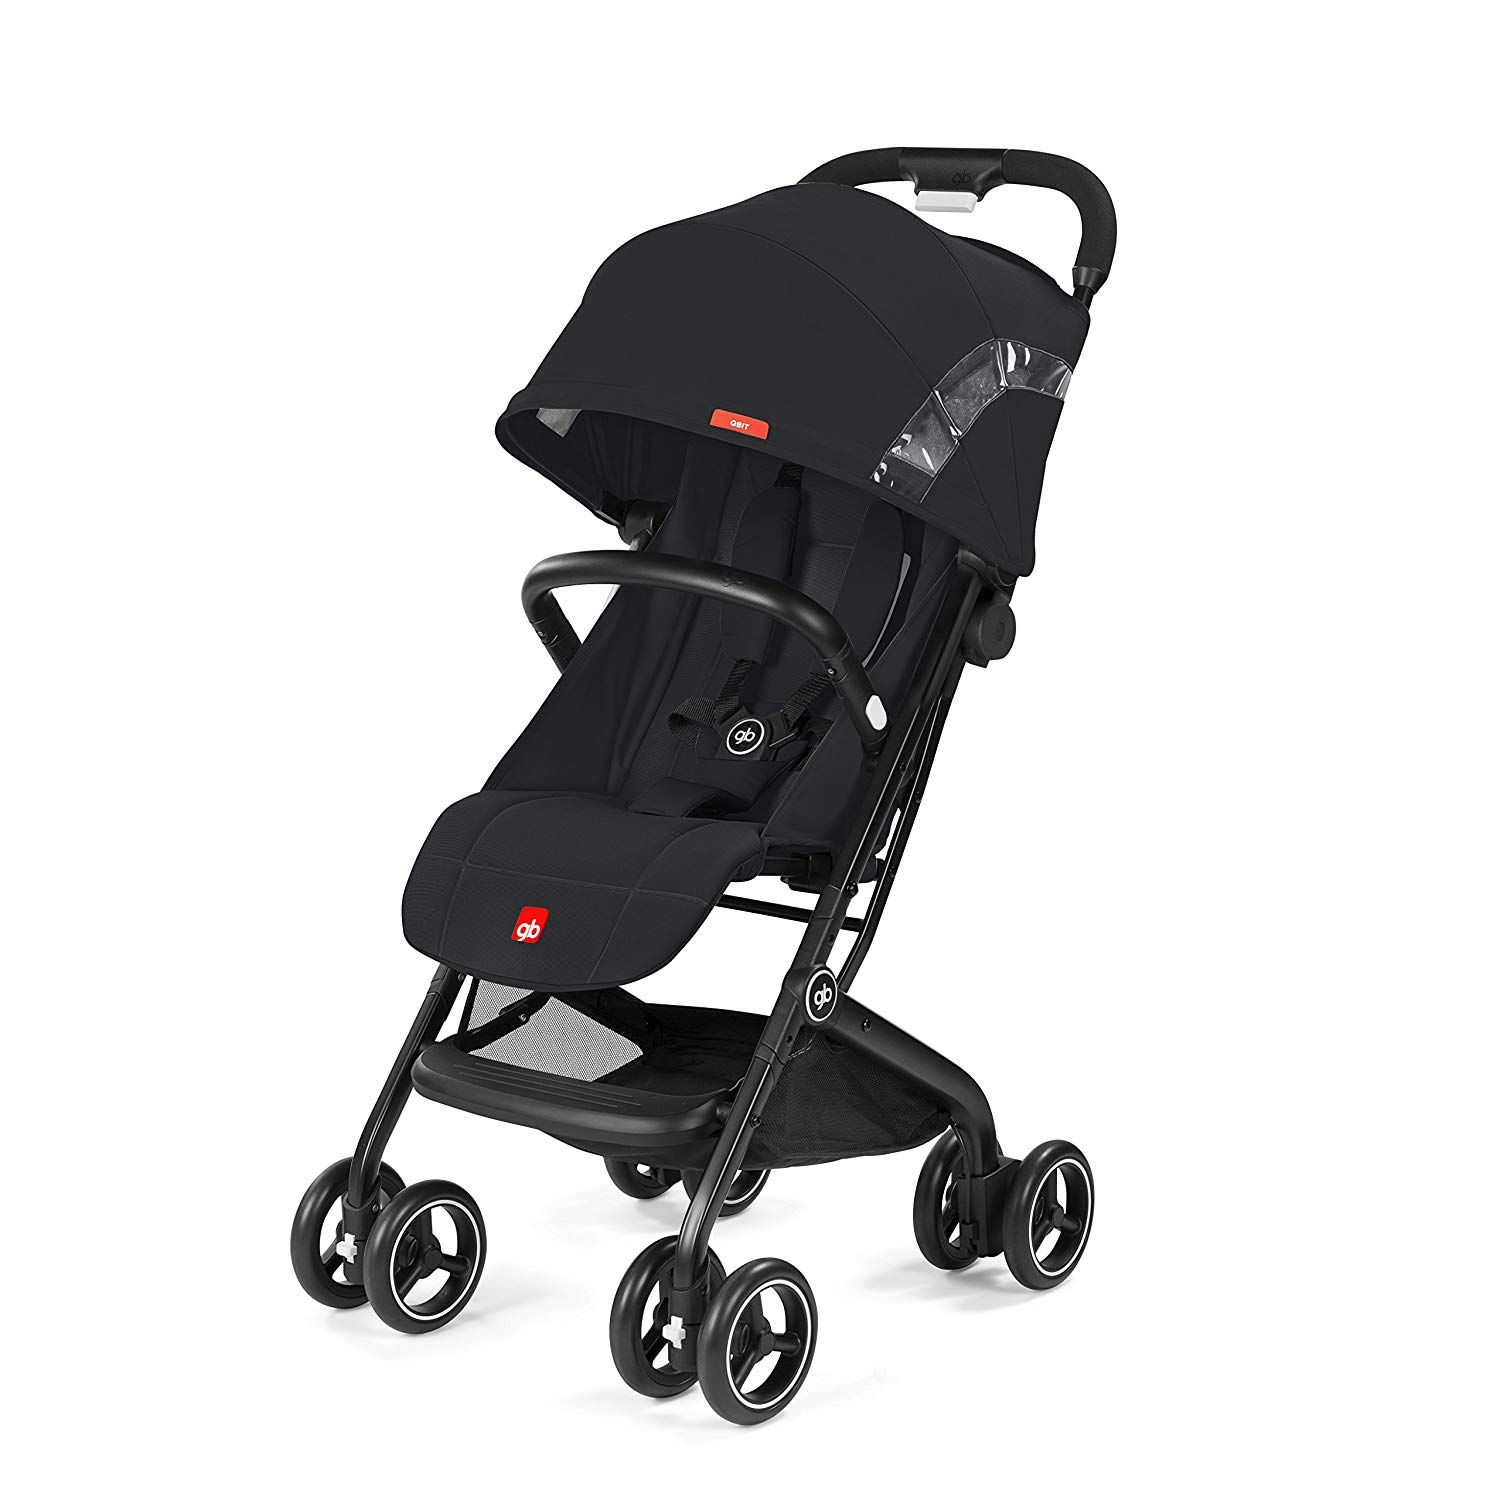 gb Gold Qbit Pushchair, Satin Black. Suitable from approx